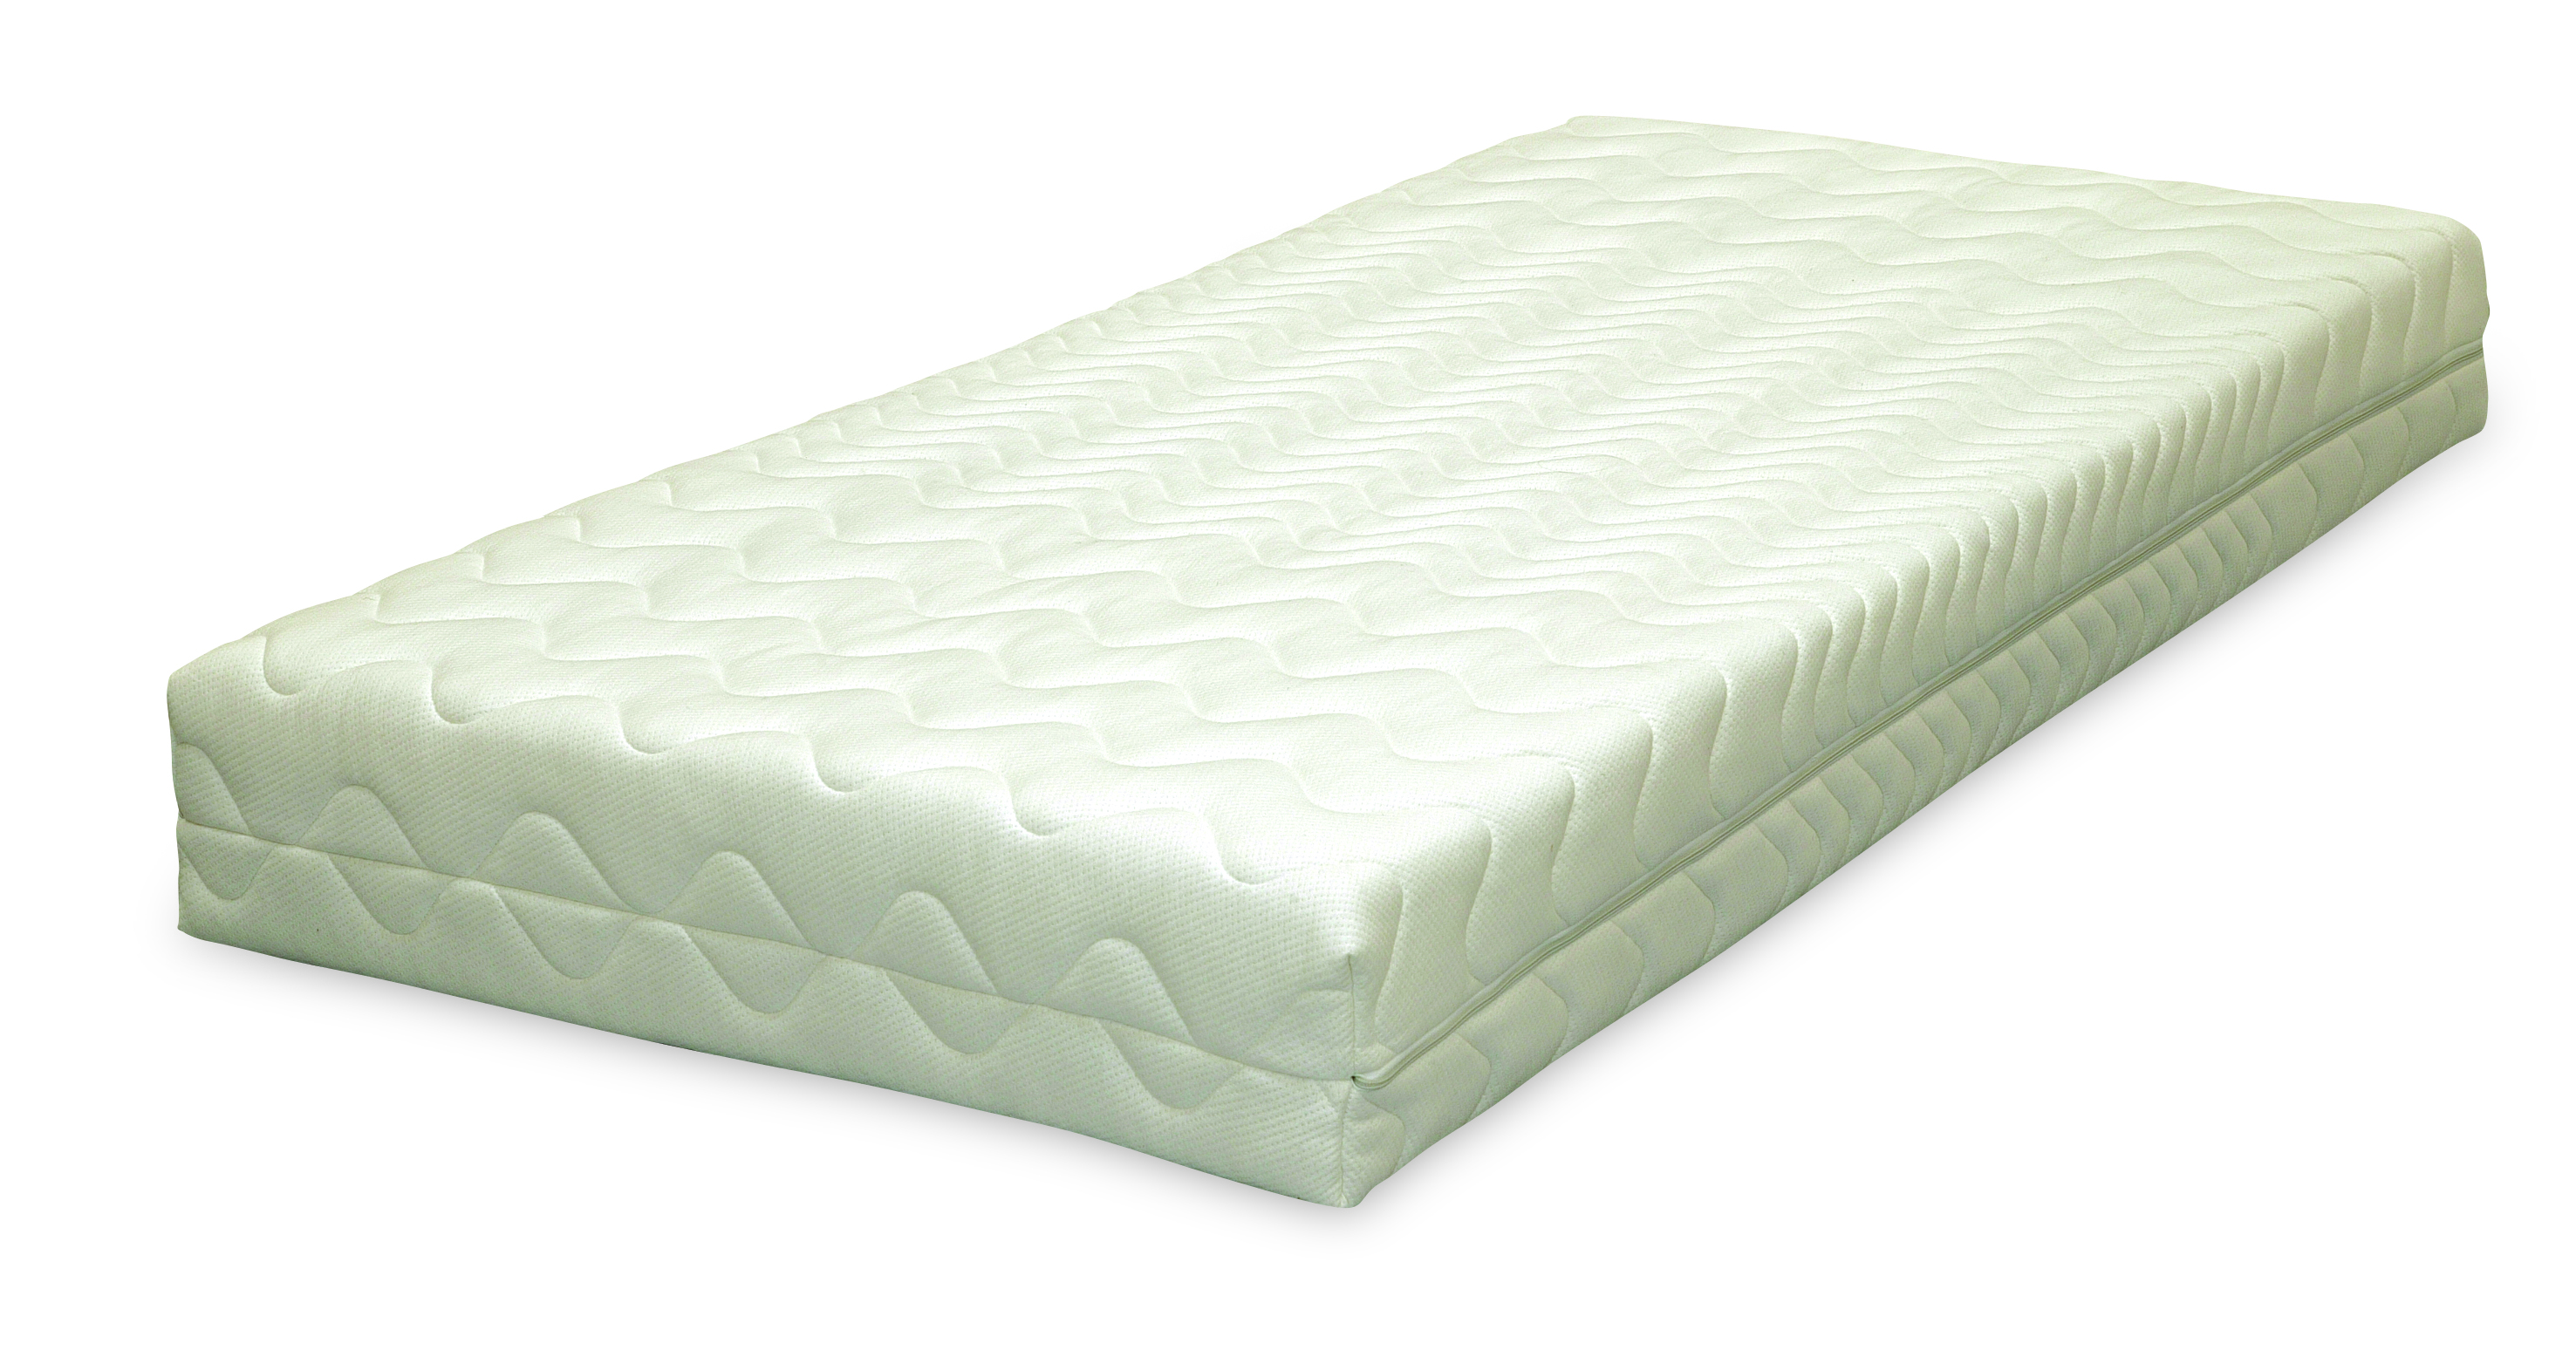 ufoam mattress image - Foam Mattresses